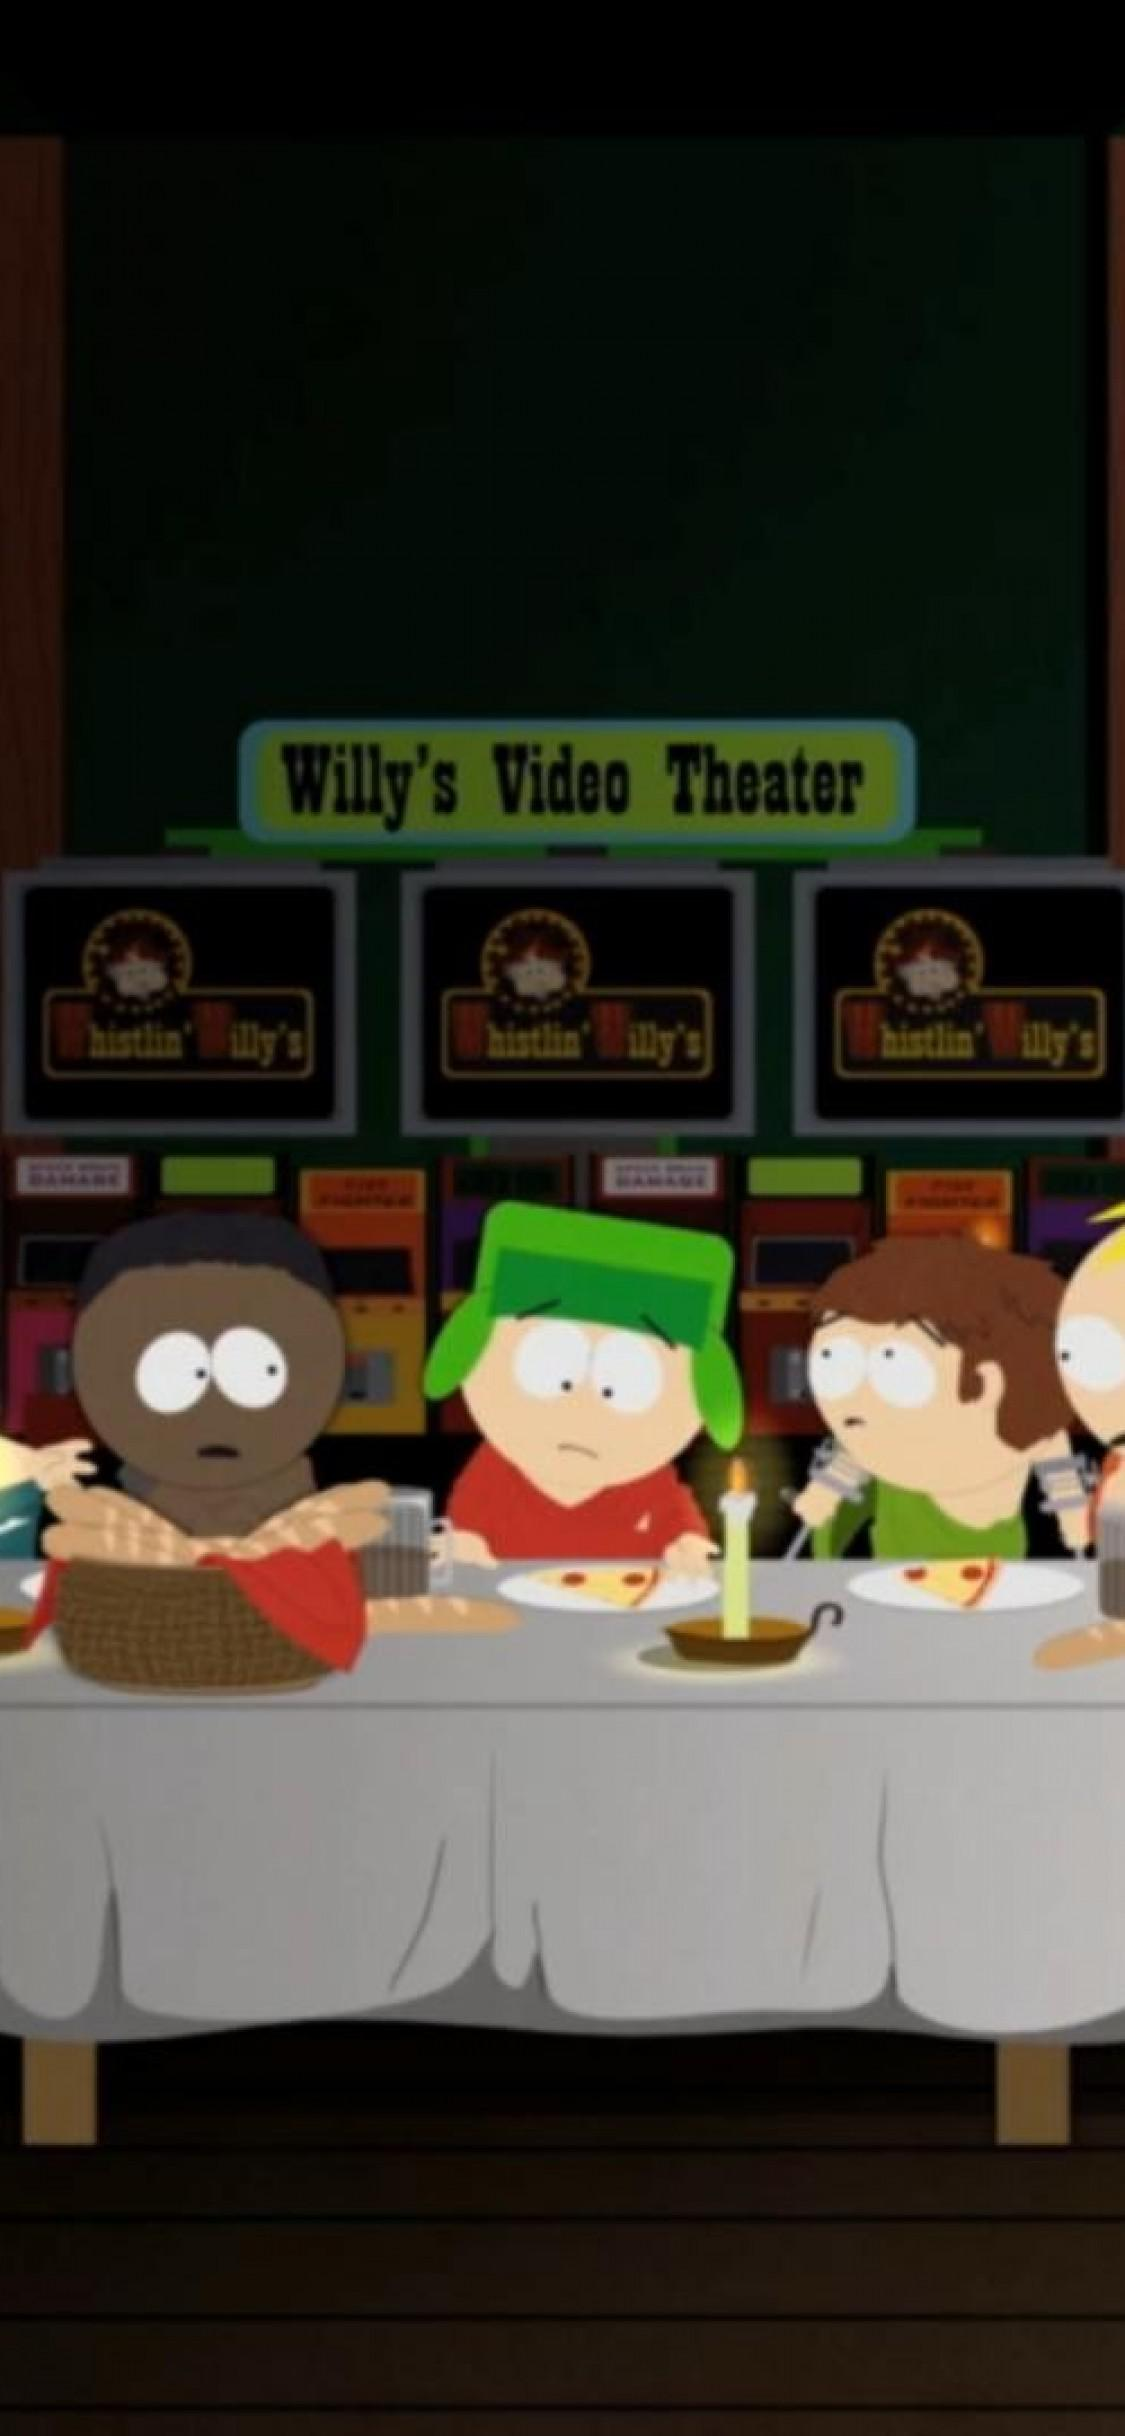 Download x wallpaper kyle broflovski south park tv